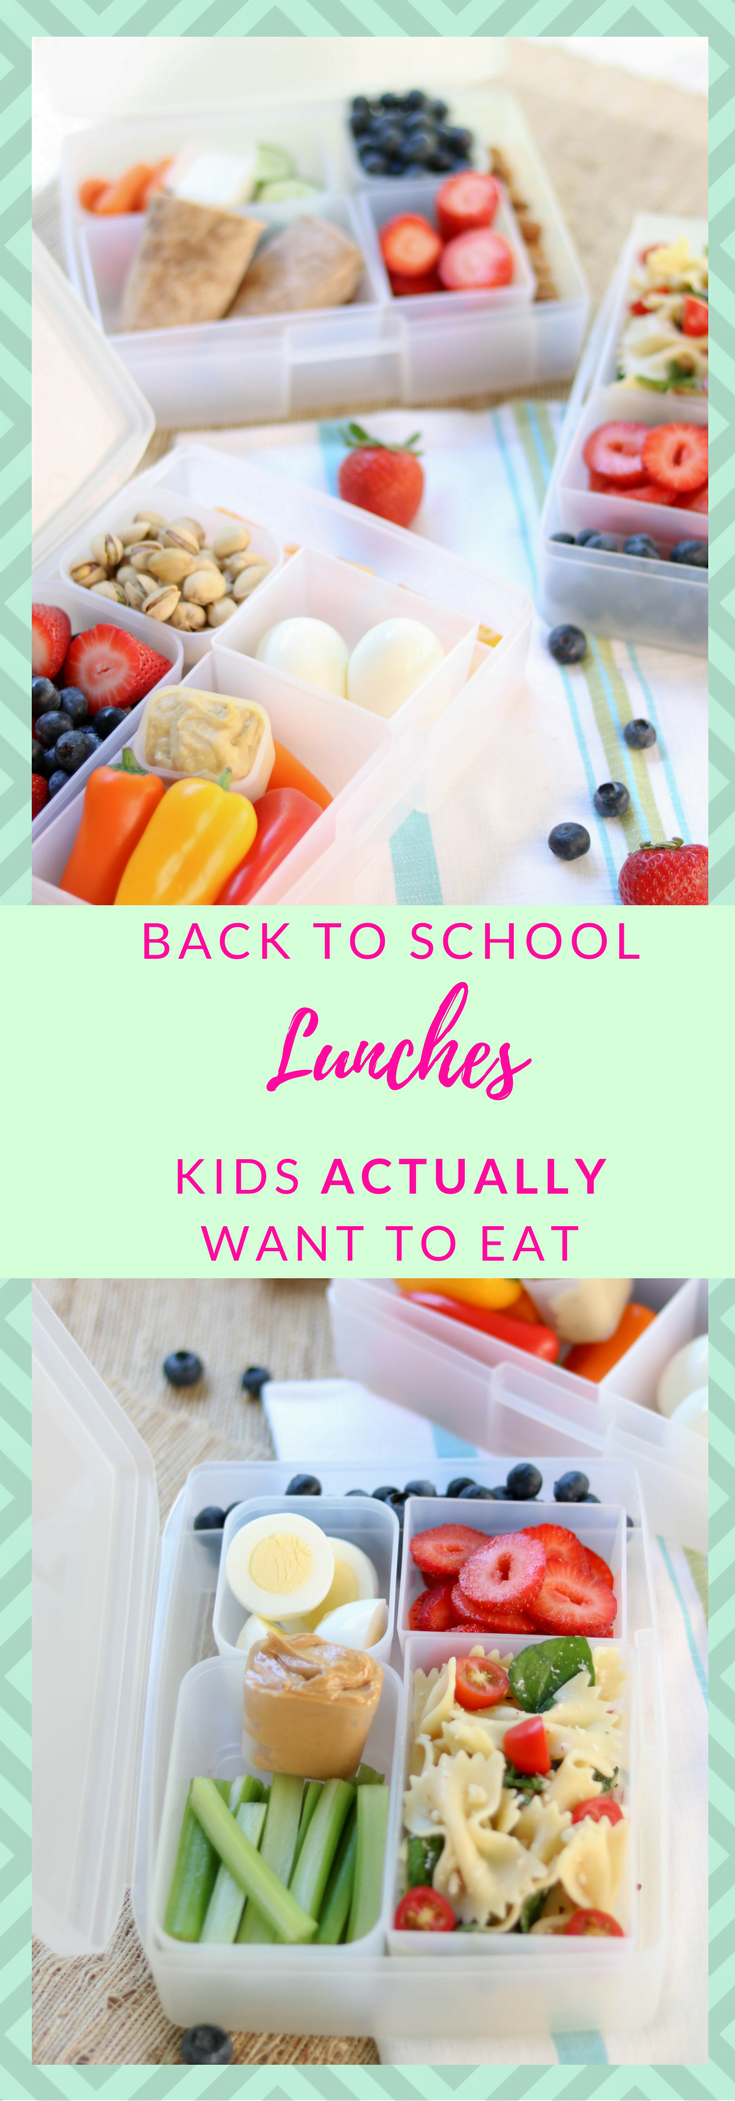 Bento Box Lunches Kids Actually Want to Eat!